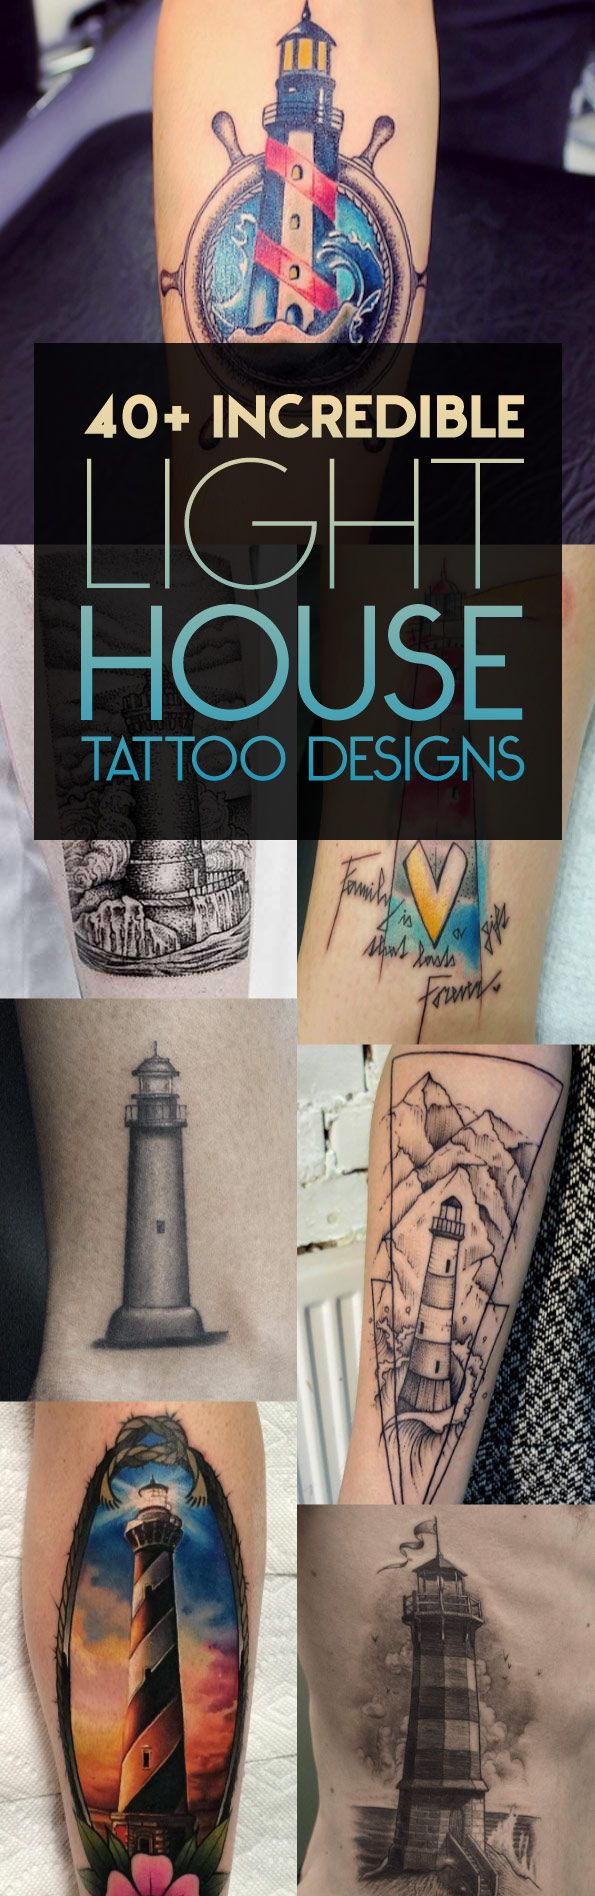 40+ Incredible Lighthouse Tattoo Designs   TattooBlend